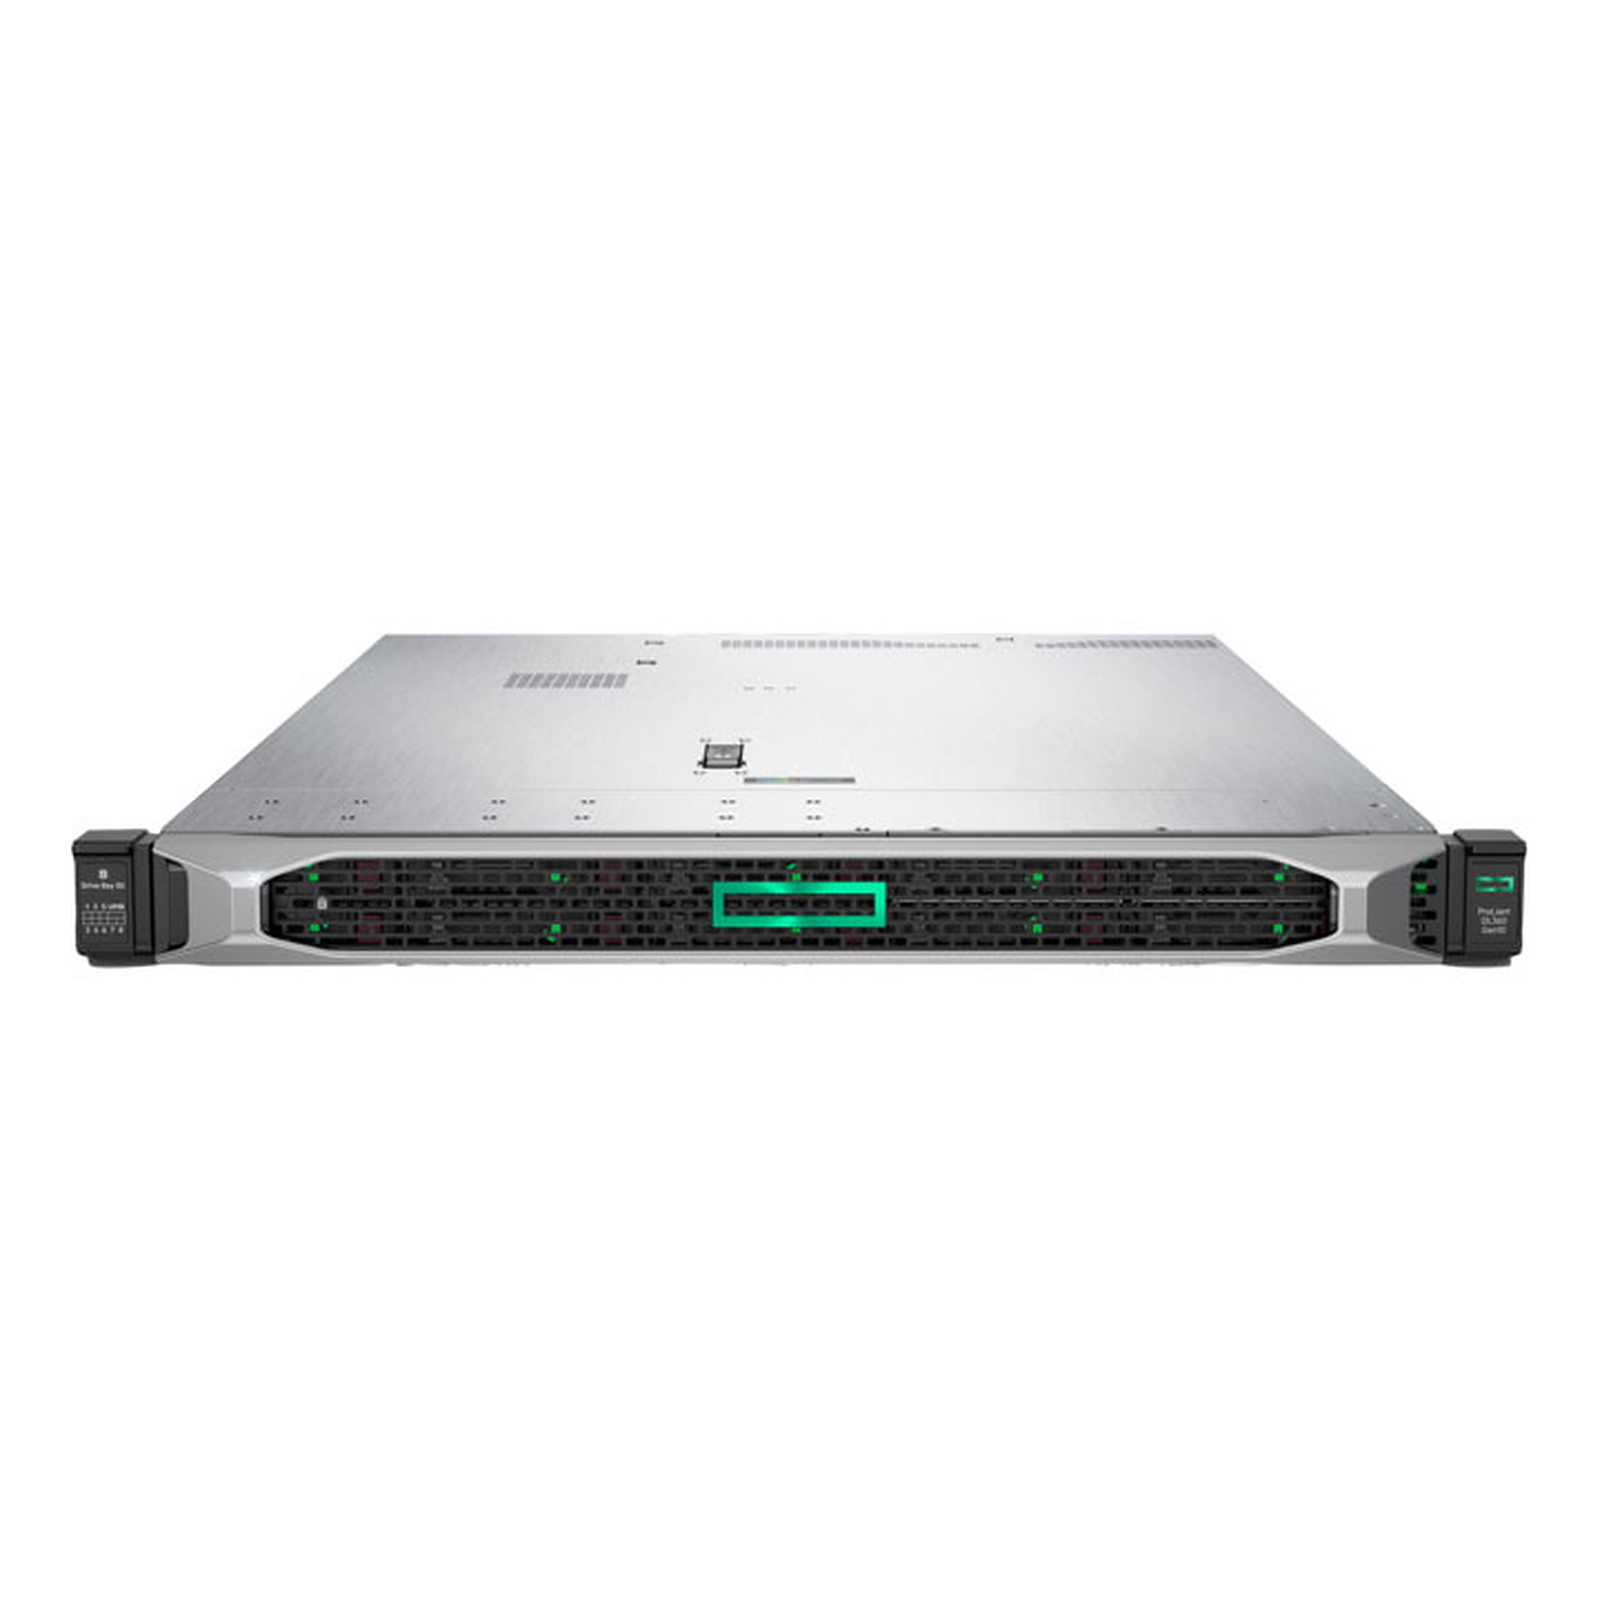 HPE ProLiant DL360 Gen10 (P06453-B21)